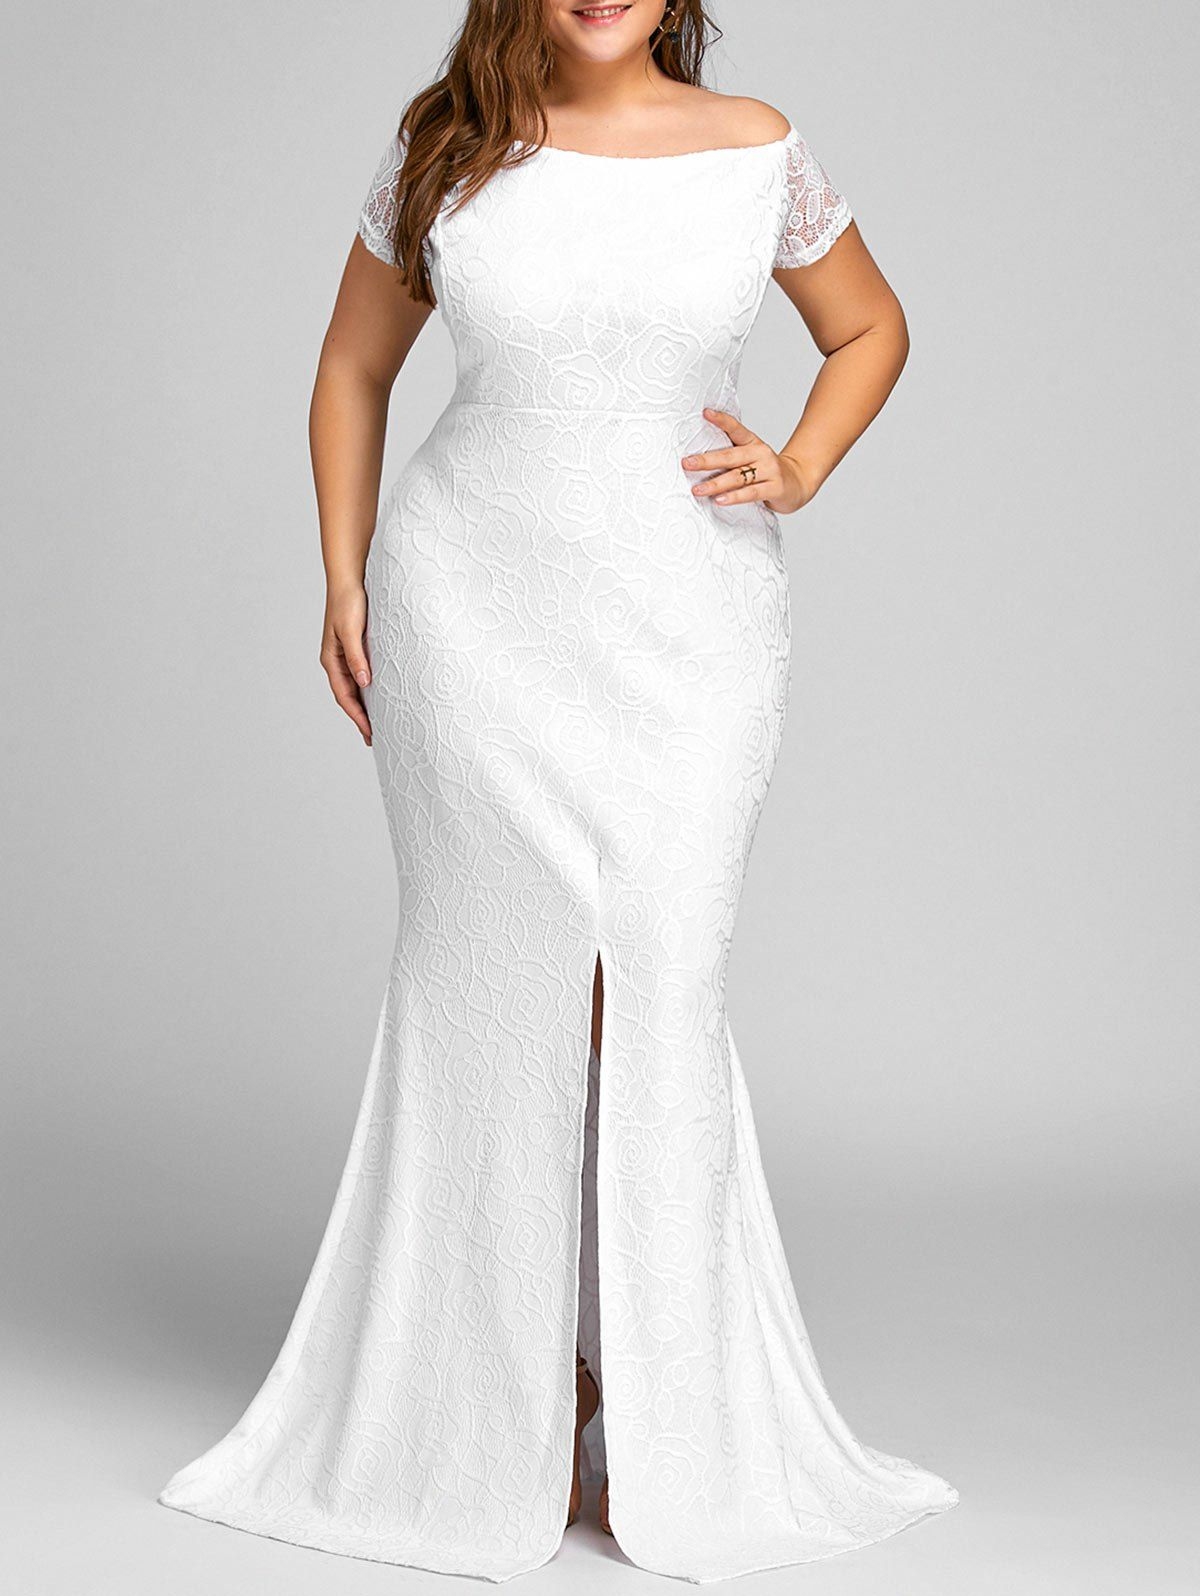 Off the shoulder lace slit plus size dress market price renewing